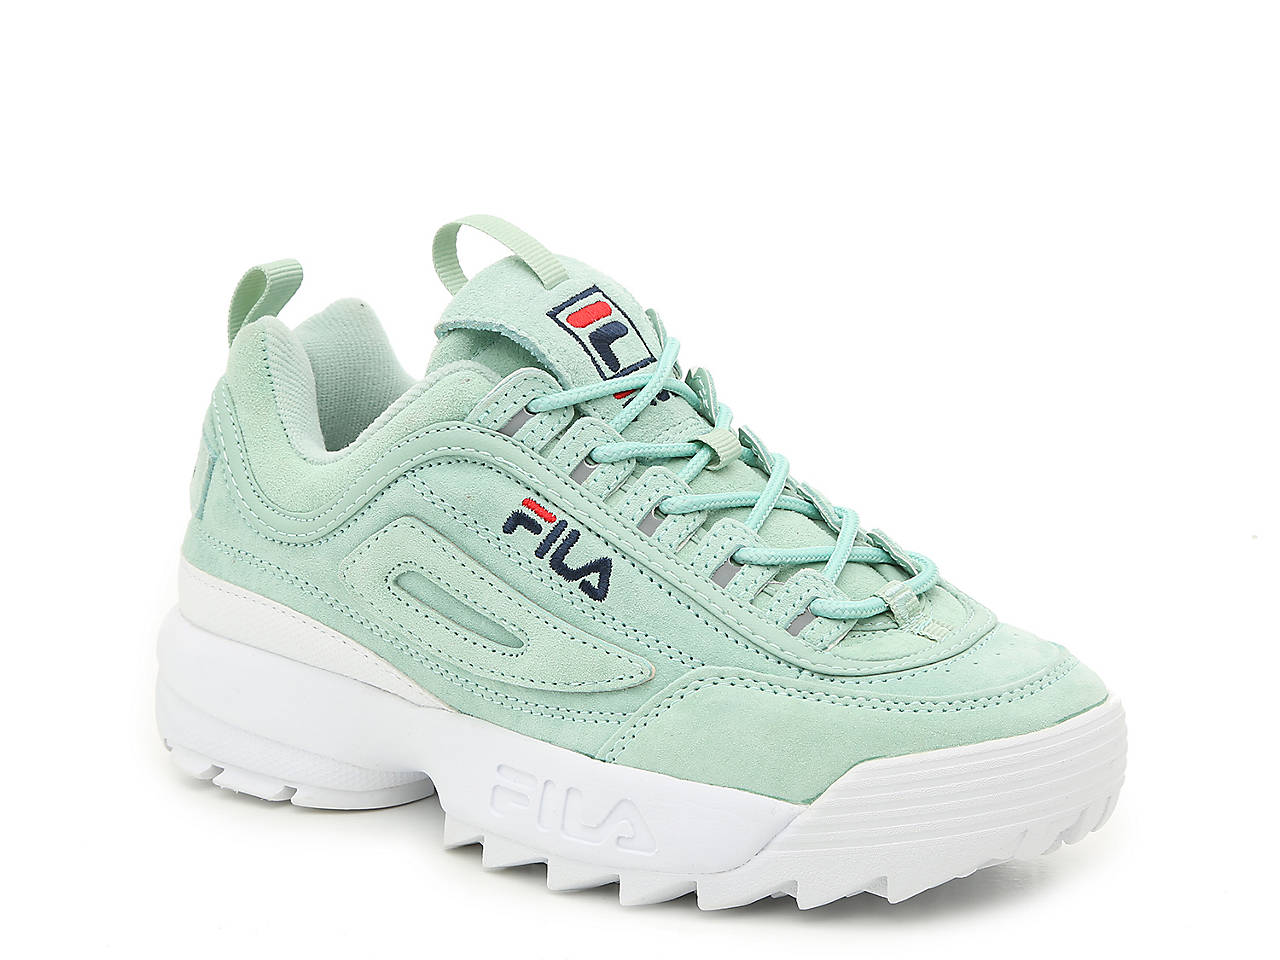 the latest f684f ea875 Fila Disruptor II Premium Sneaker - Women s Women s Shoes   DSW